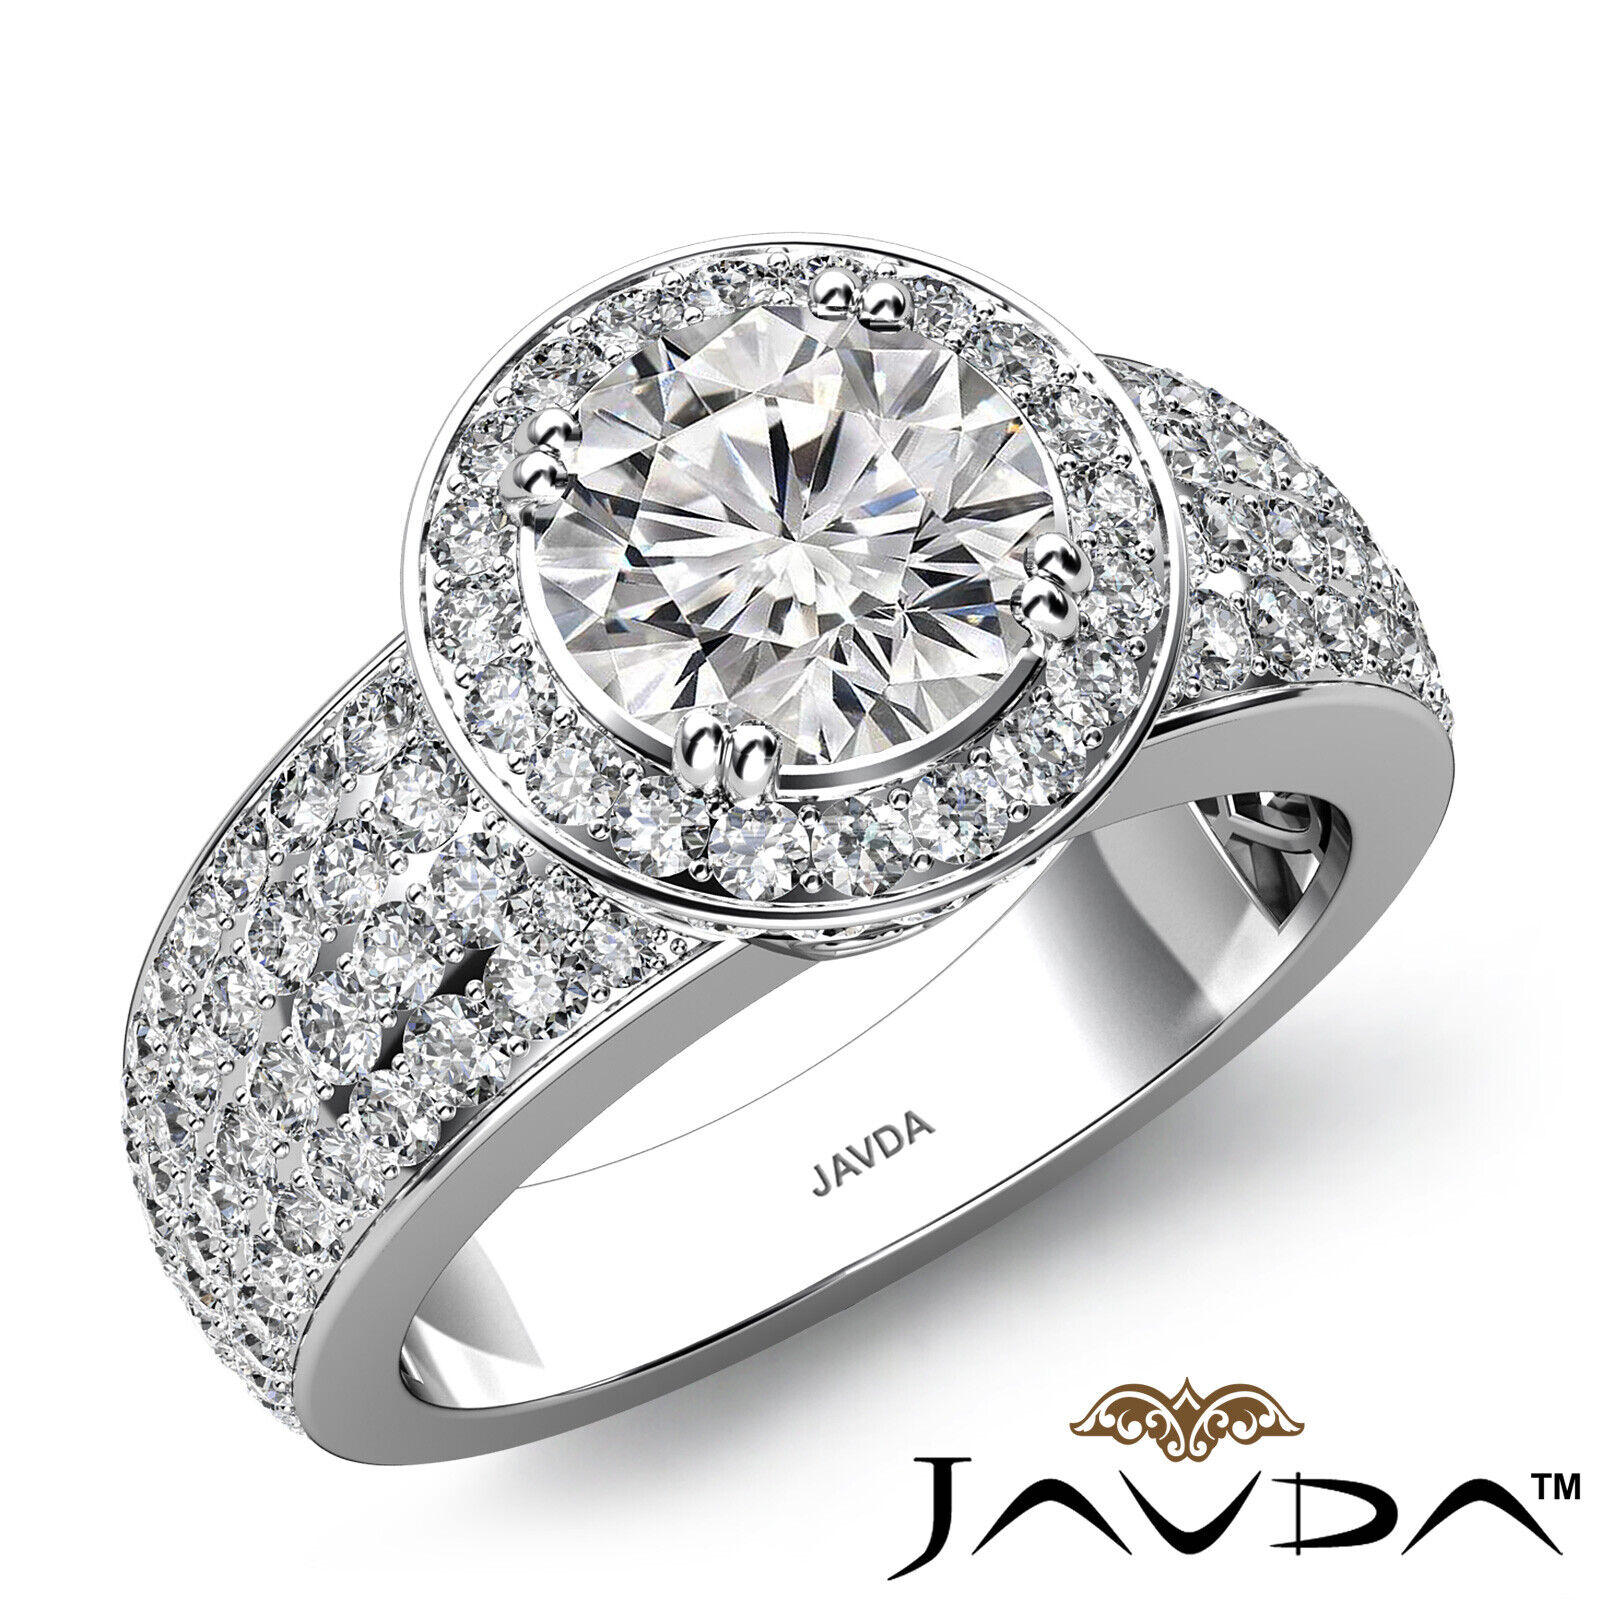 4 Row Pave Round Diamond Engagement GIA I SI1 Filigree Heart Shank Ring 3.03 Ct